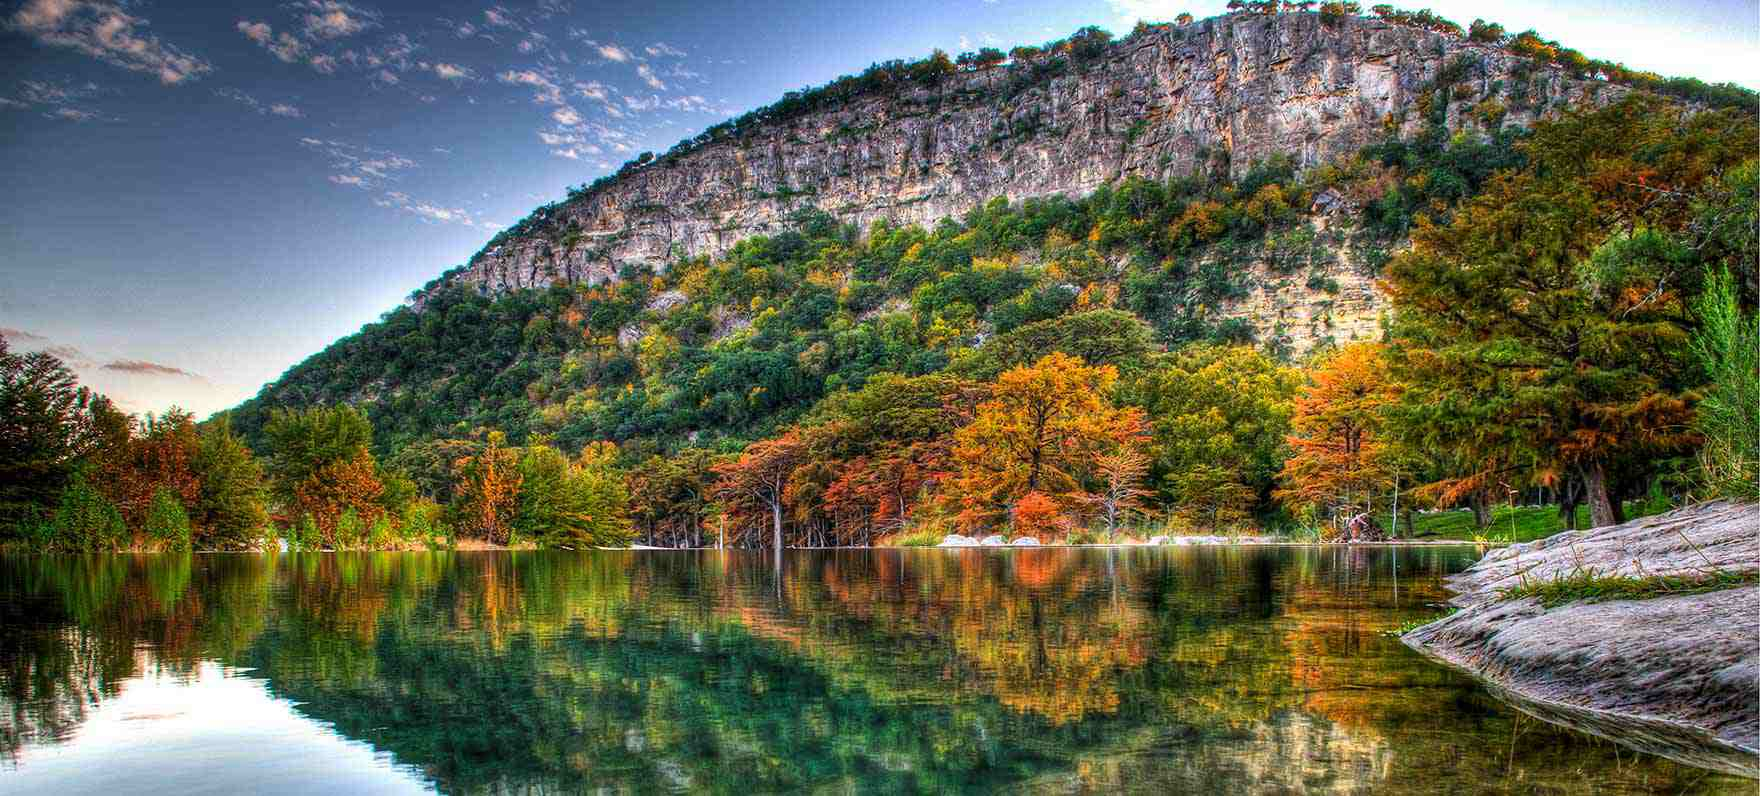 Texas State Parks for Summer Recreational Activities